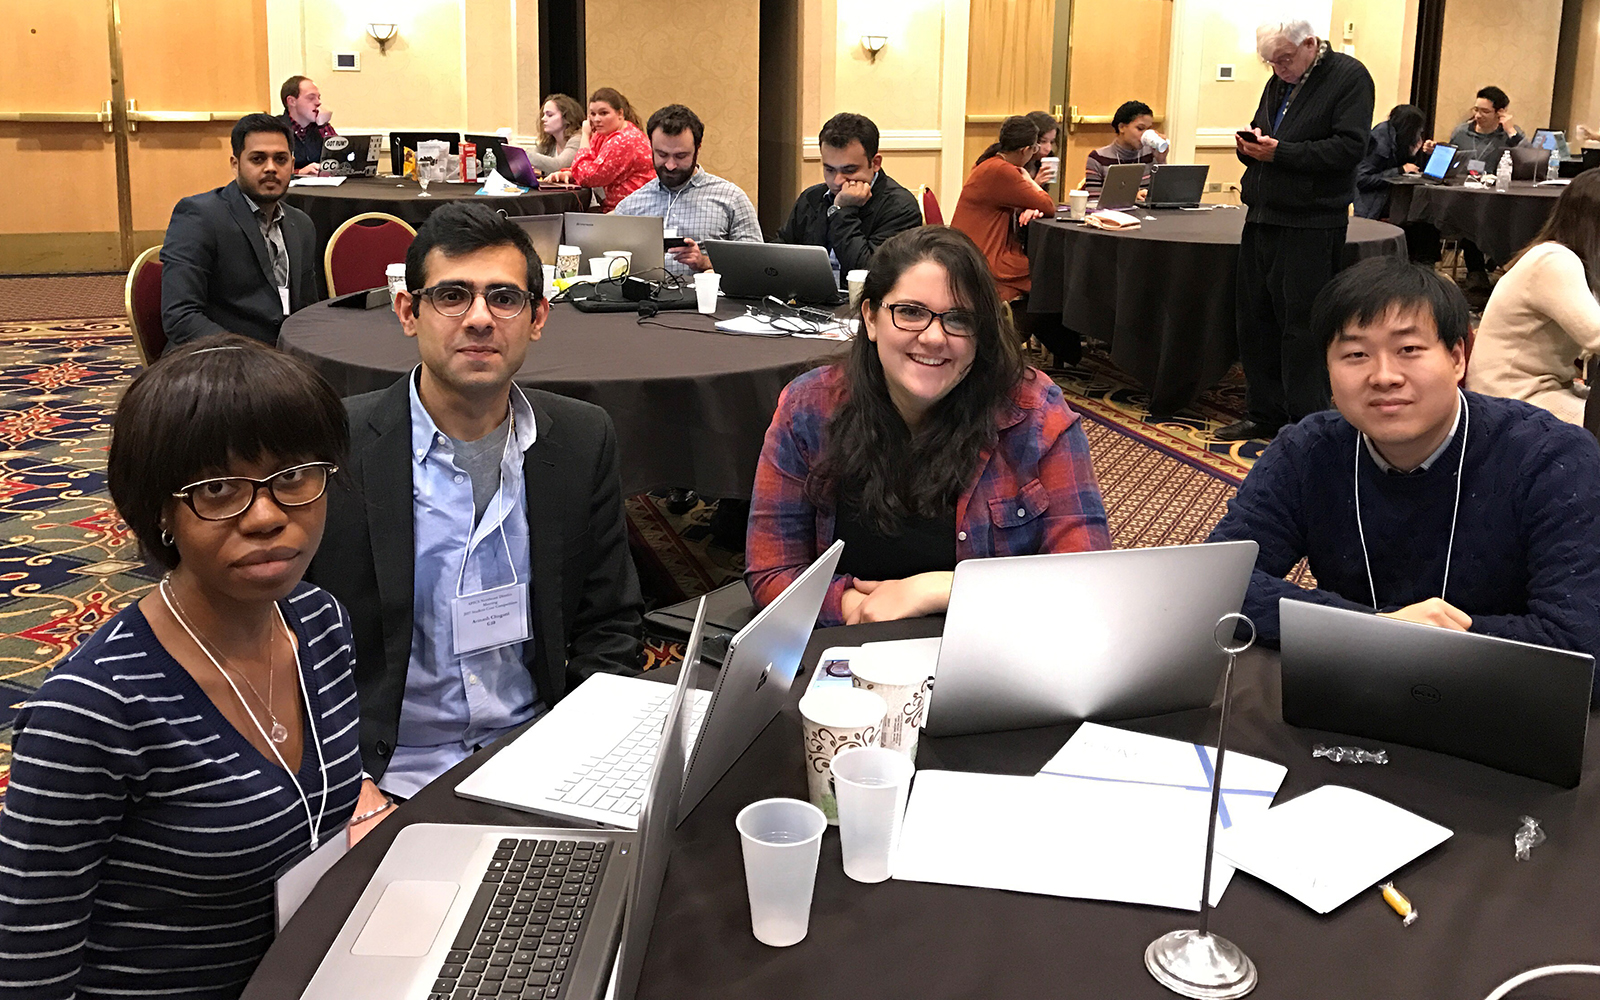 Enuma Ezeife, Avinash Chugani, Alexandra Buchanan and Ted Jin made up the team of UConn graduate studetns who won the APICS Northeast Student Competition (Ryan Baldassario/UConn School of Business)